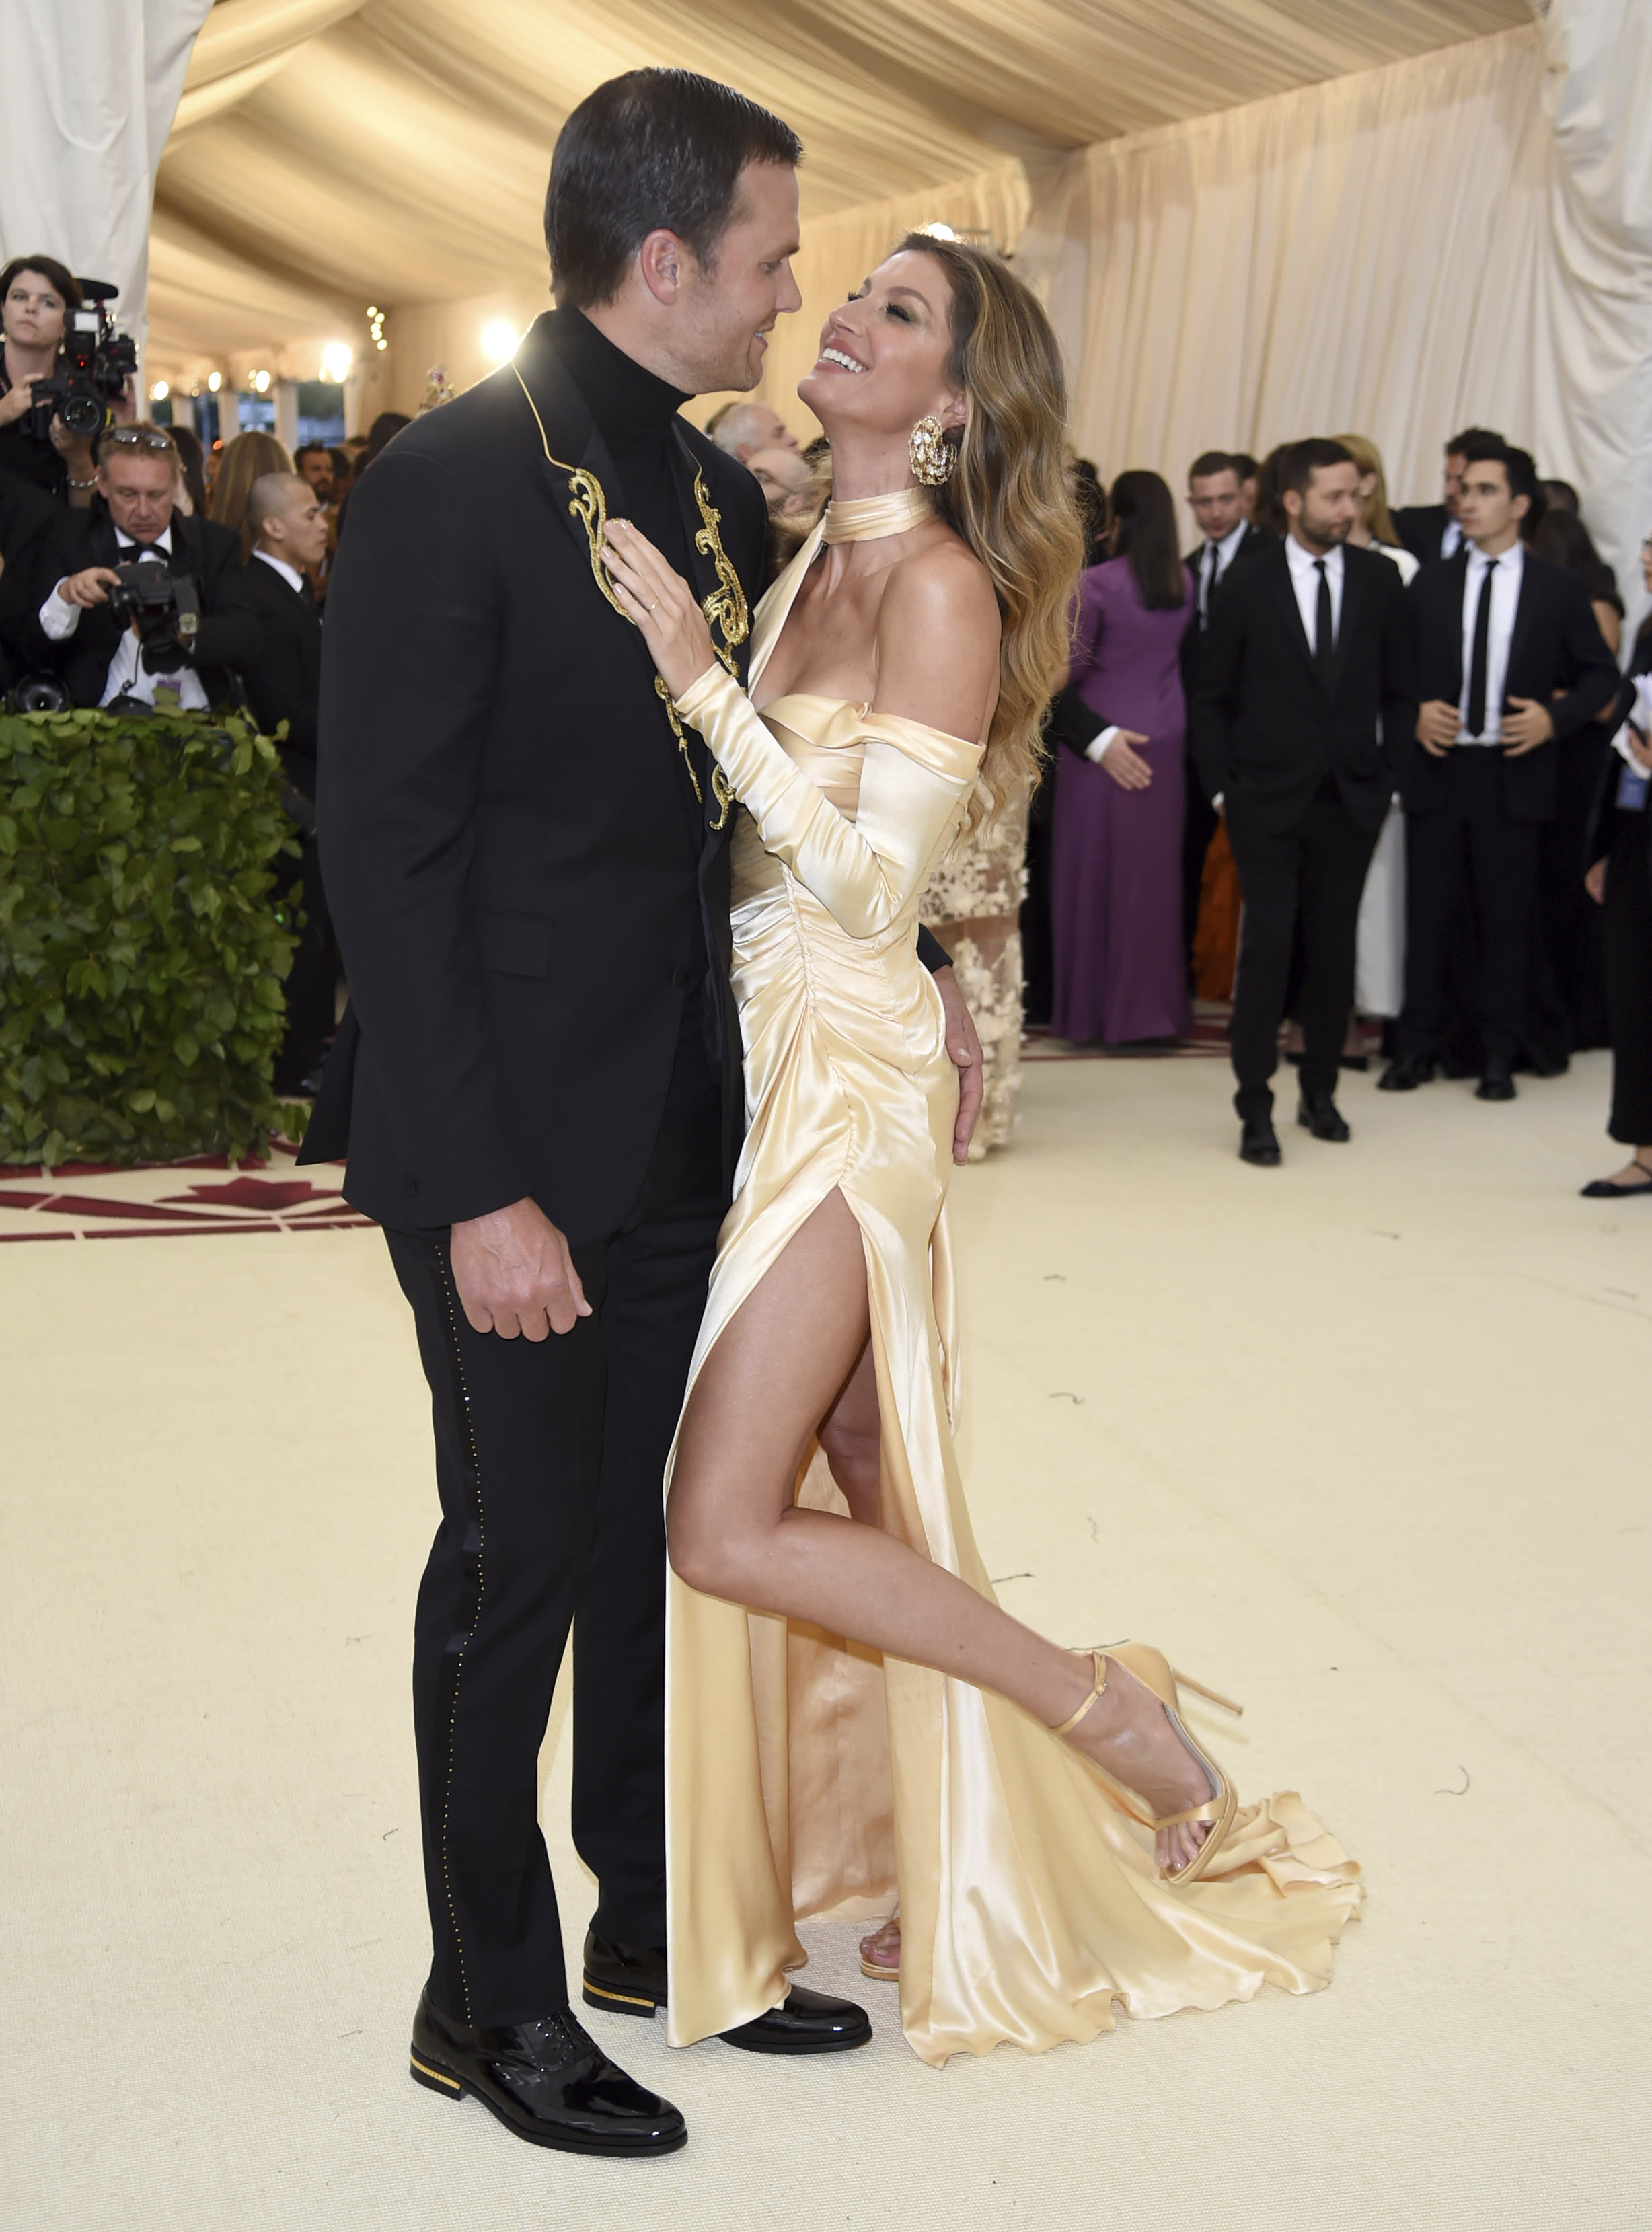 Fashion style Get the gisele look bundchen 2 for woman